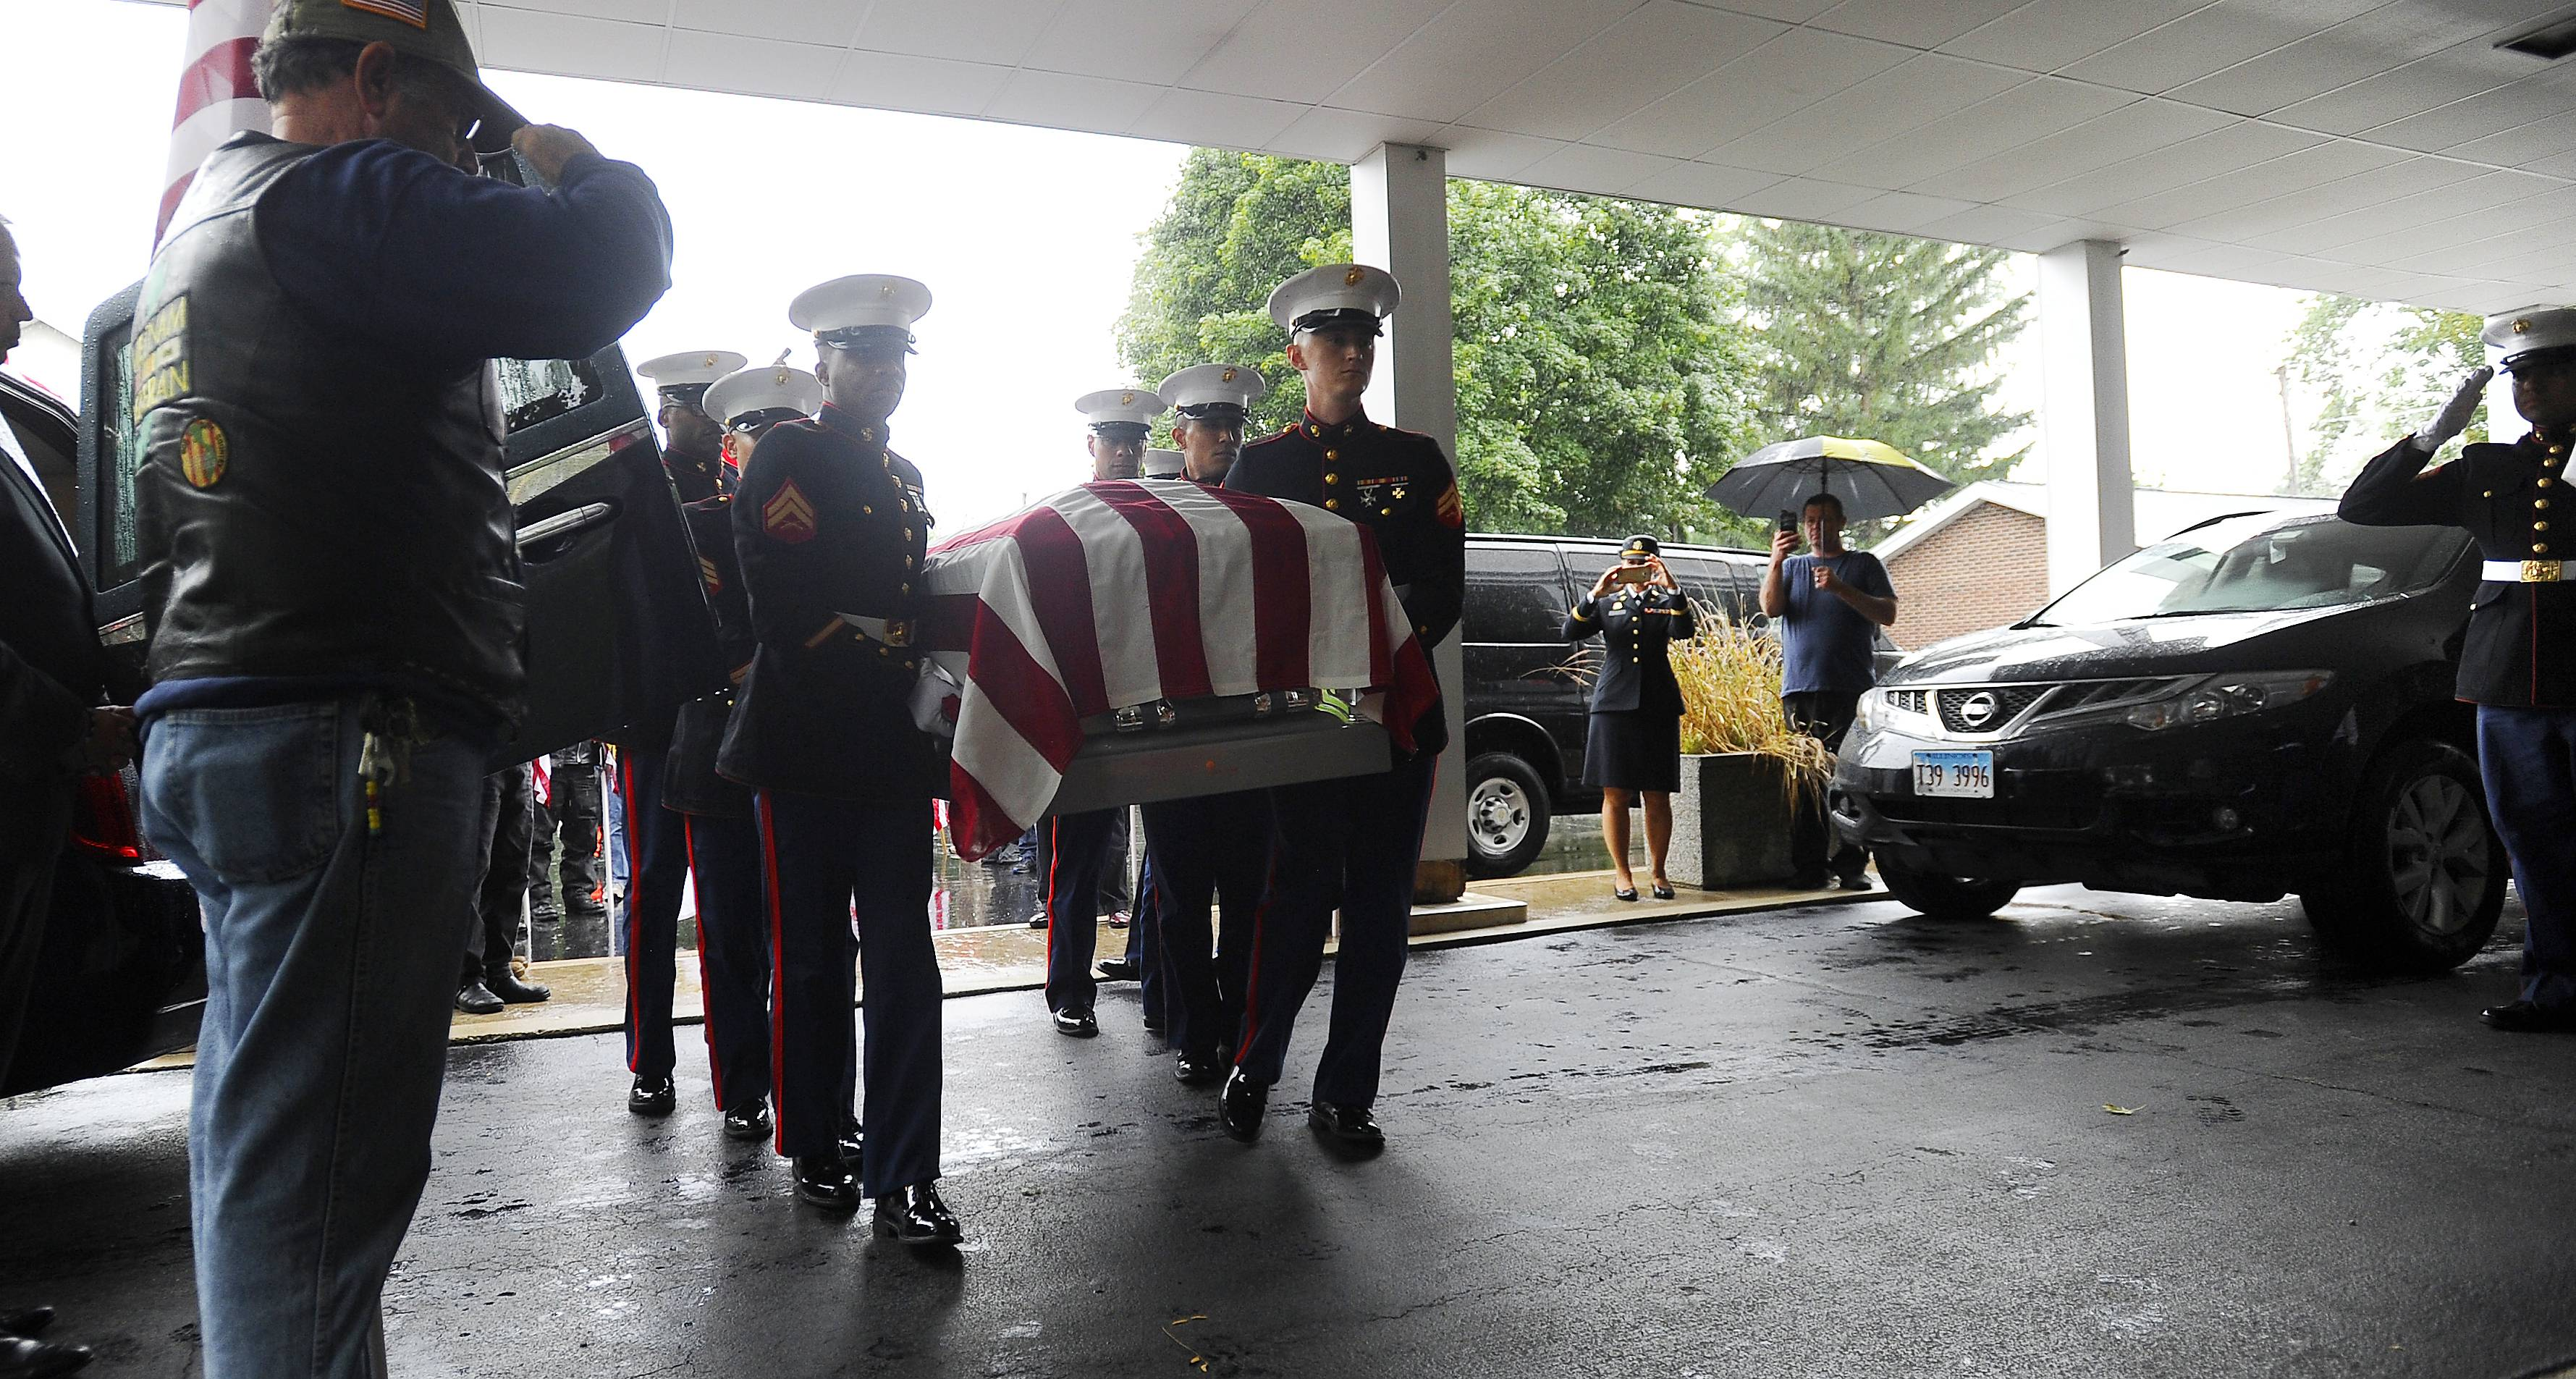 'A promise has been fullfilled': Marine killed in 1943 returned to Arlington Heights